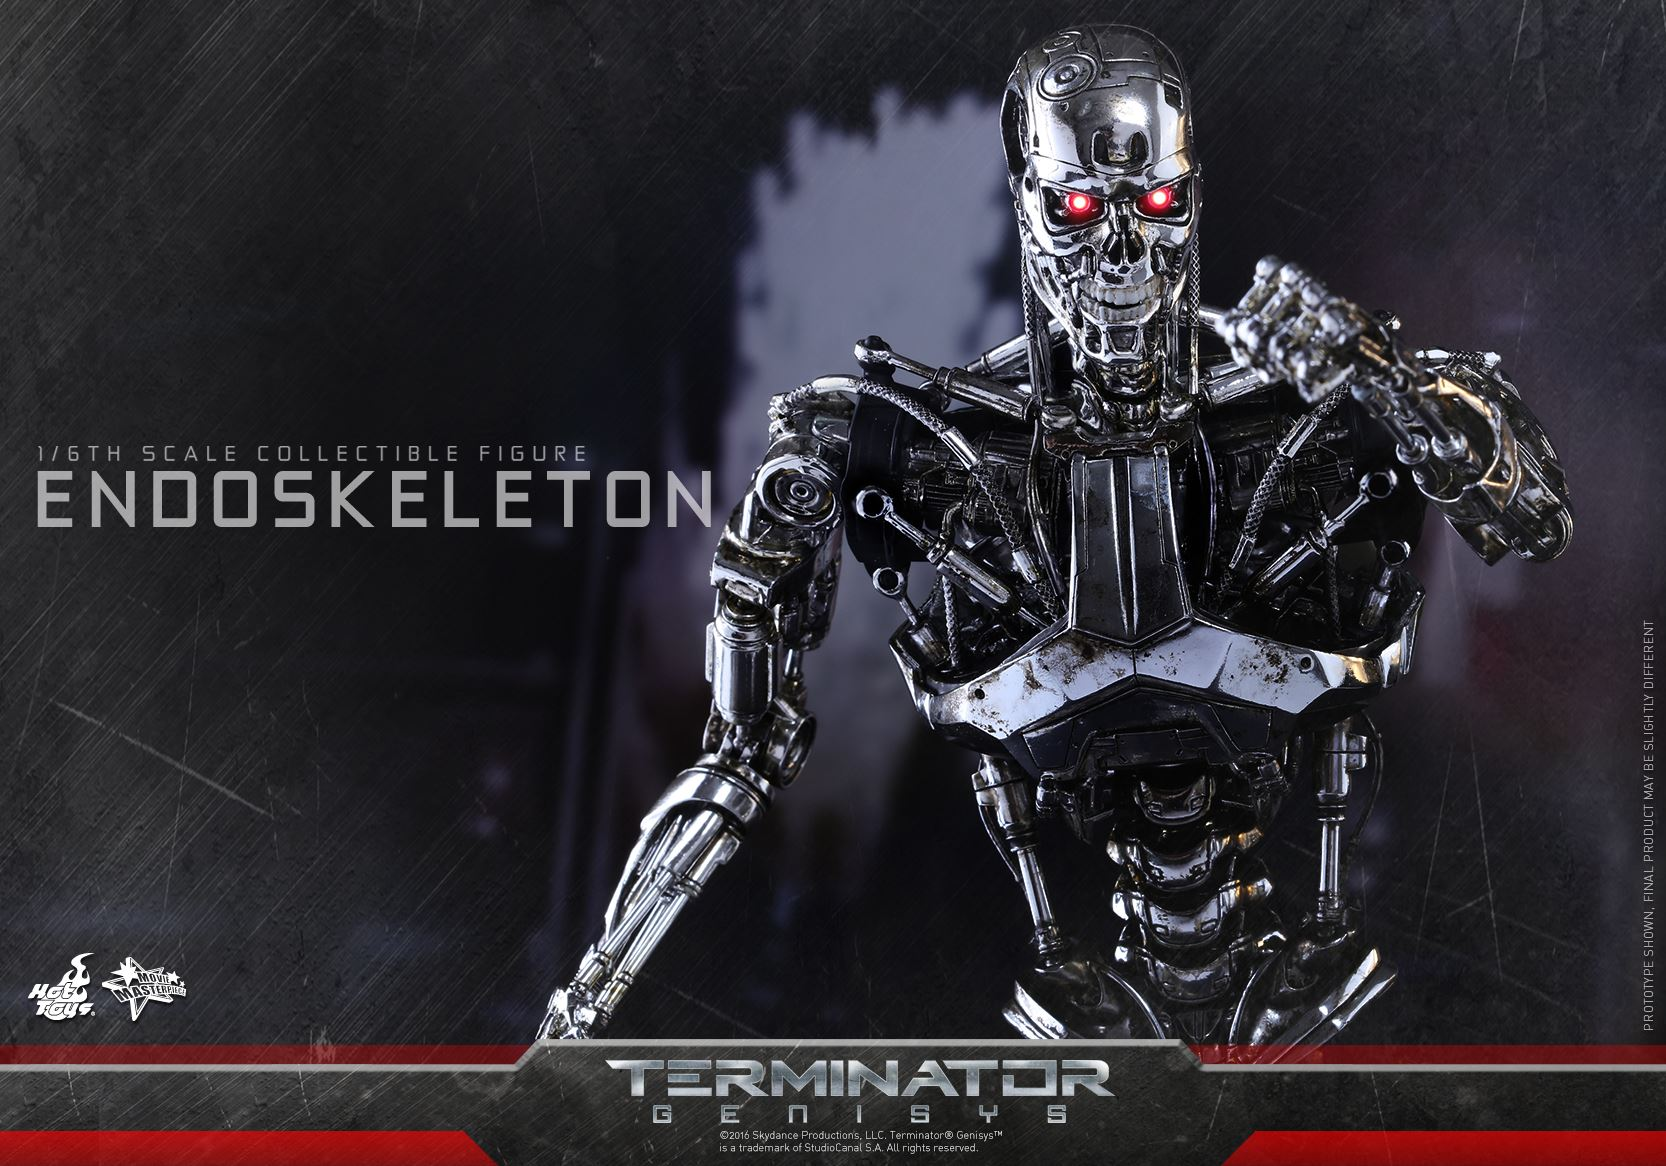 Terminator: Genisys T-800 Endoskeleton by Hot Toys